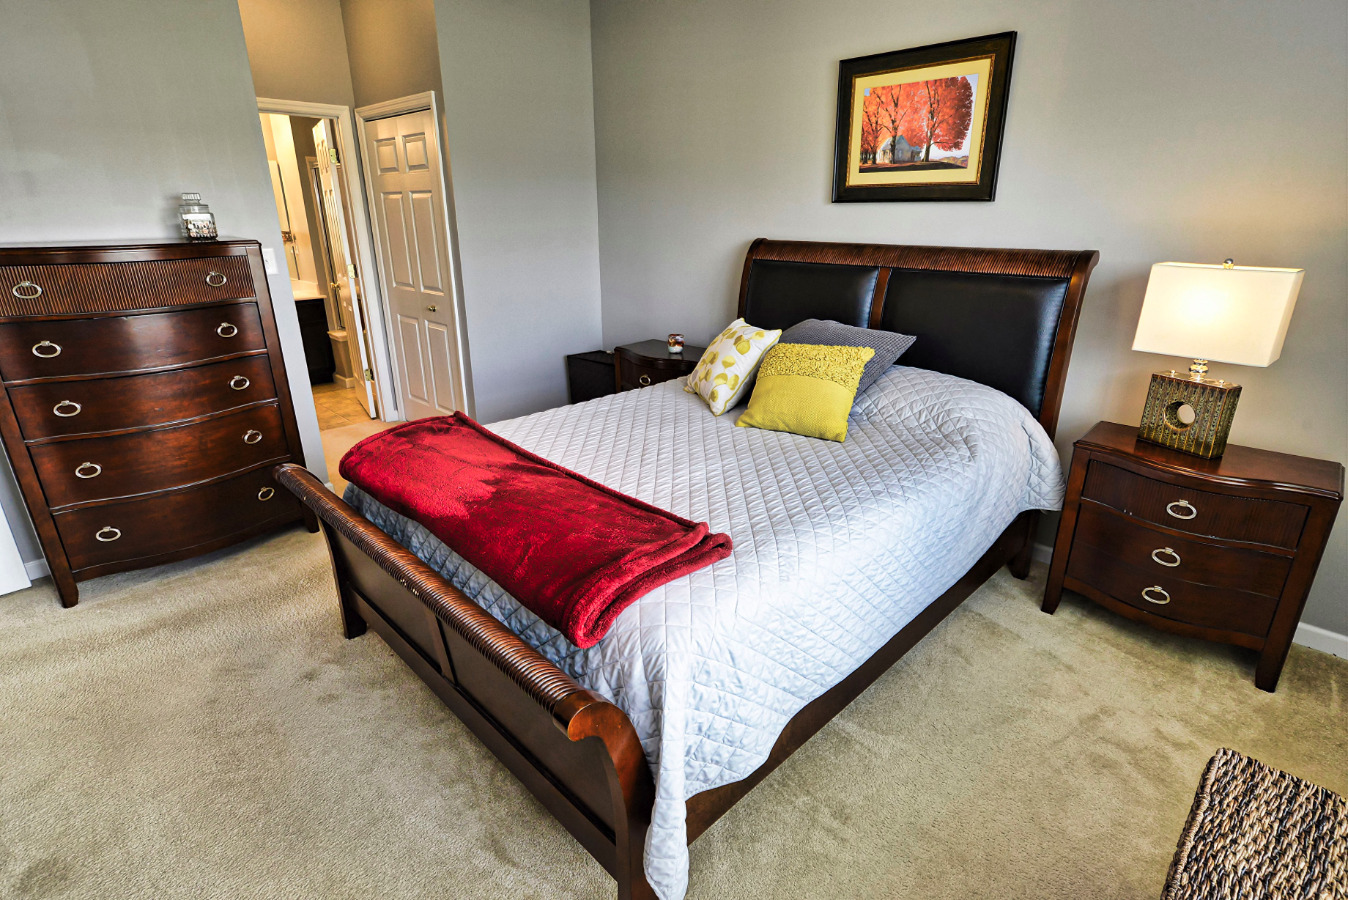 The bedroom is huge! And, the washer and dryer are in the hallway closet adjacen